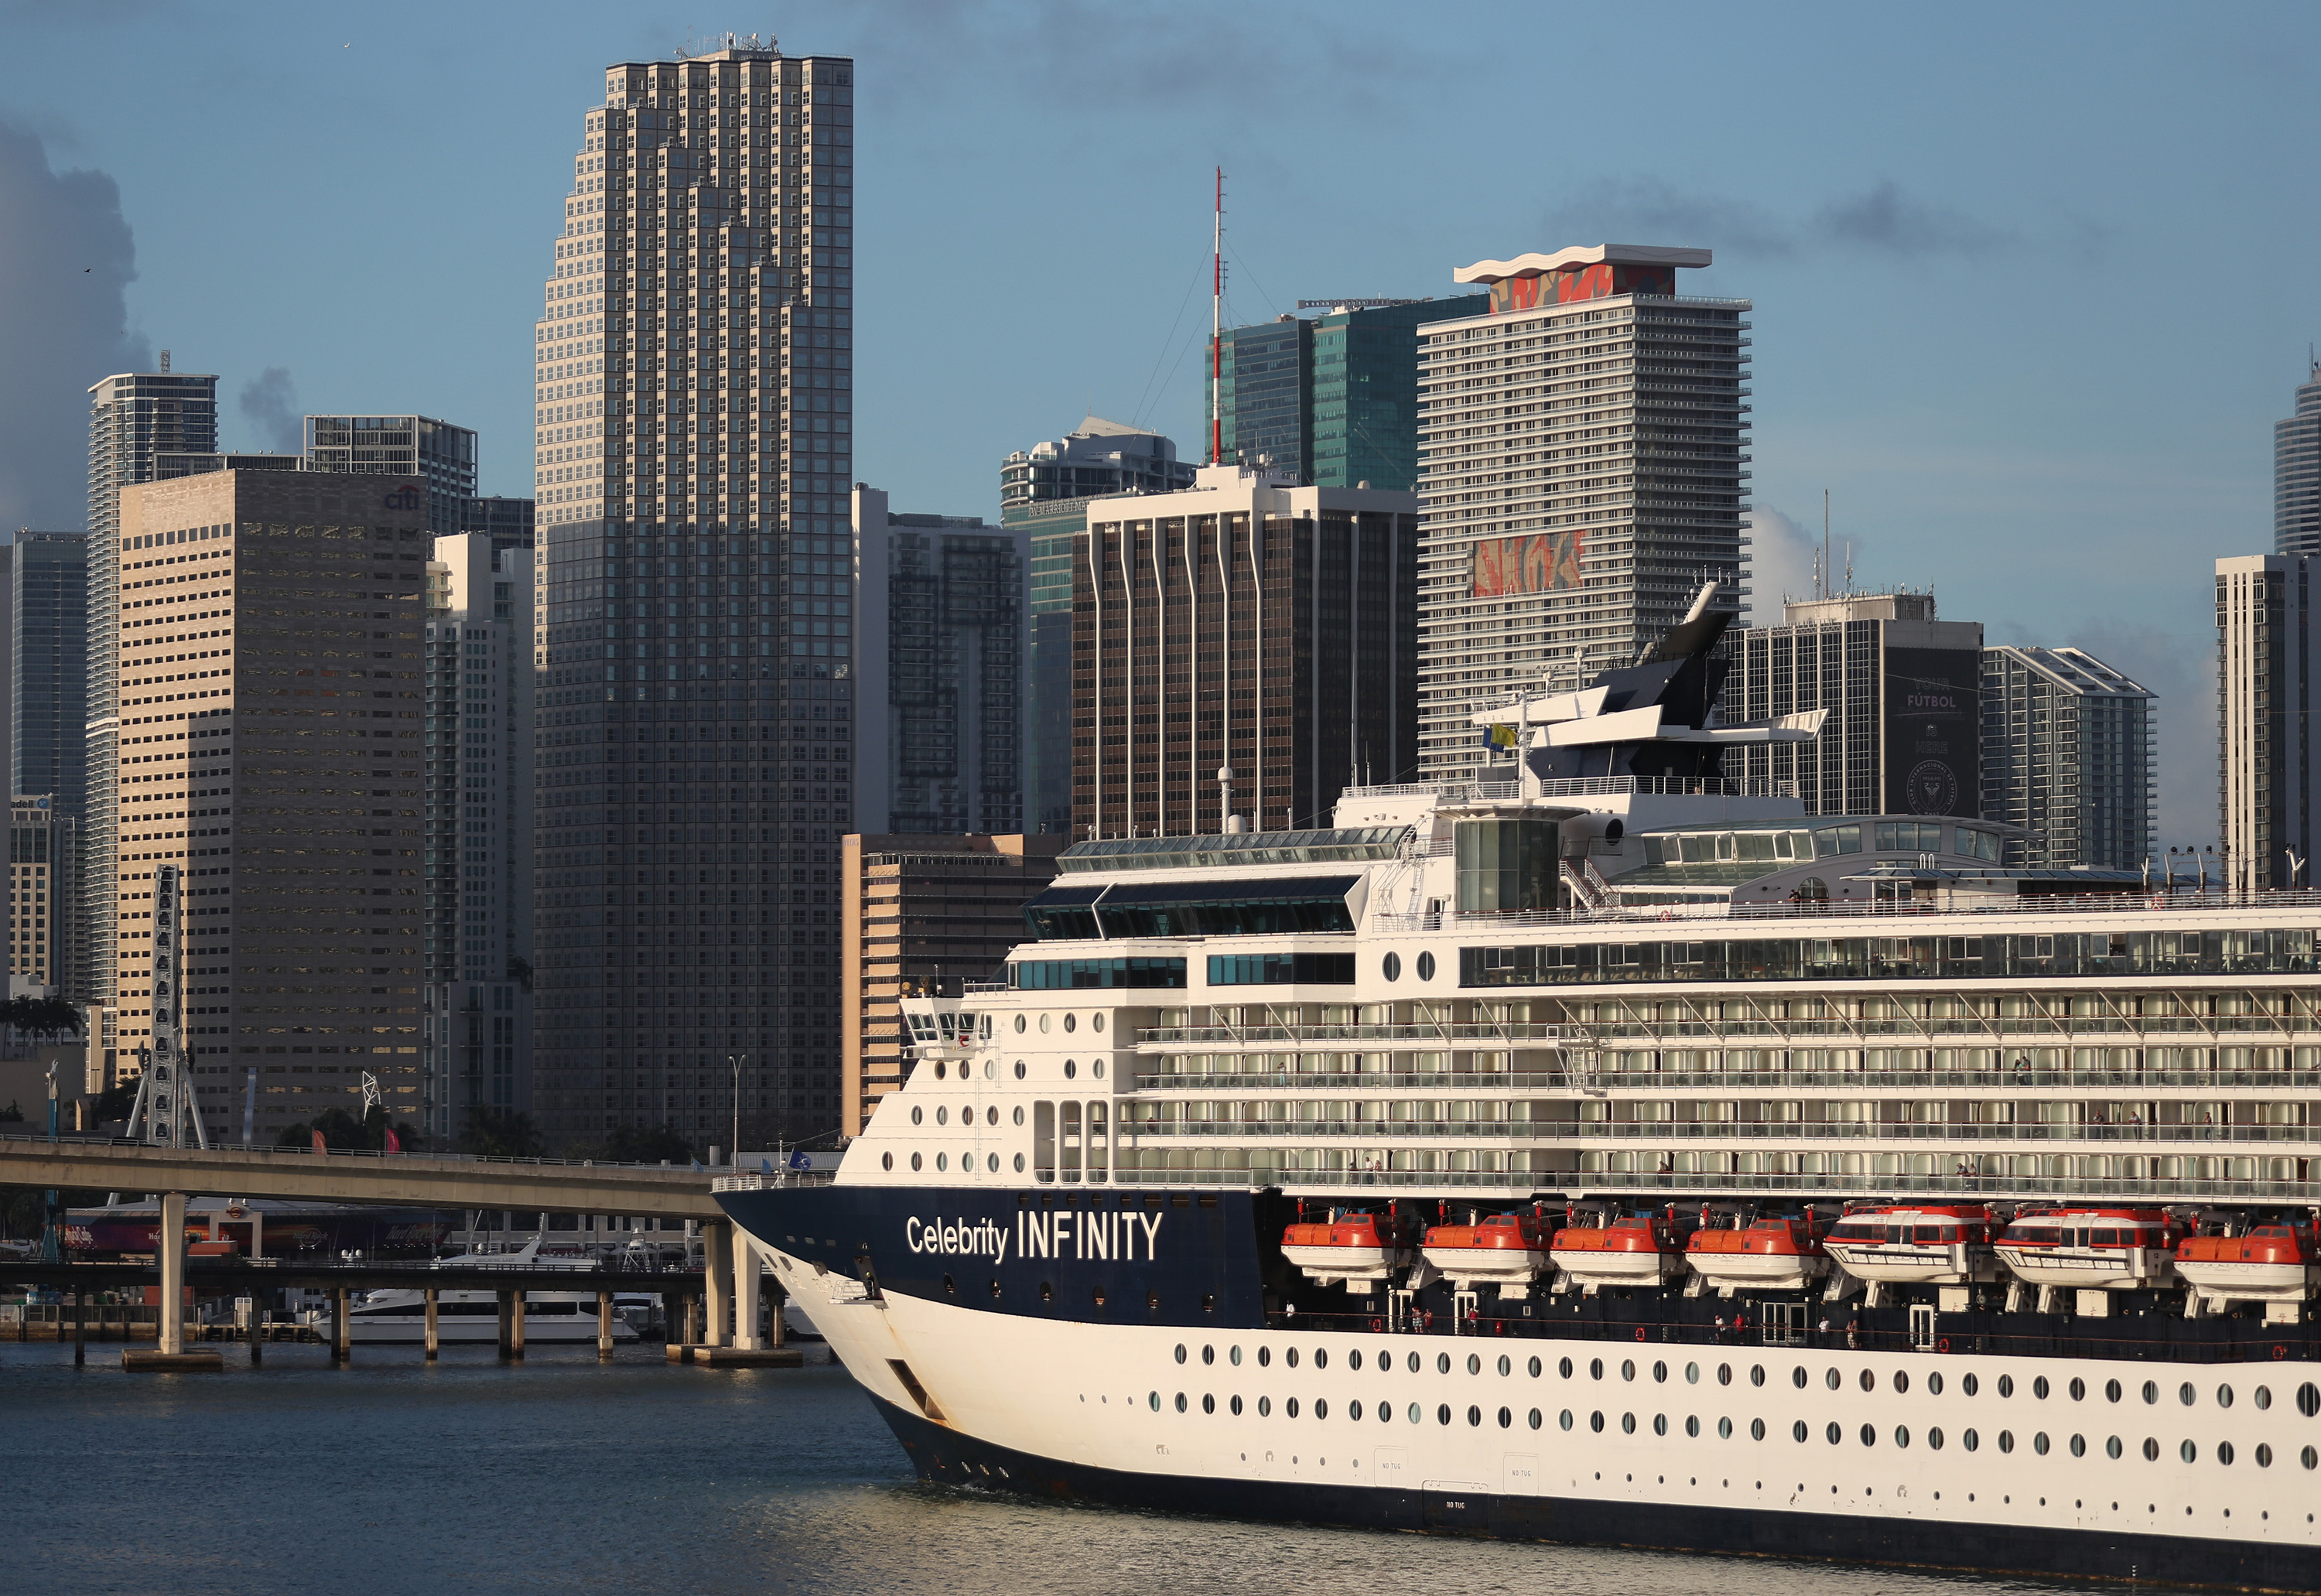 The Celebrity Infinity Cruise ship returns to PortMiami on March 14 in Miami, Florida.